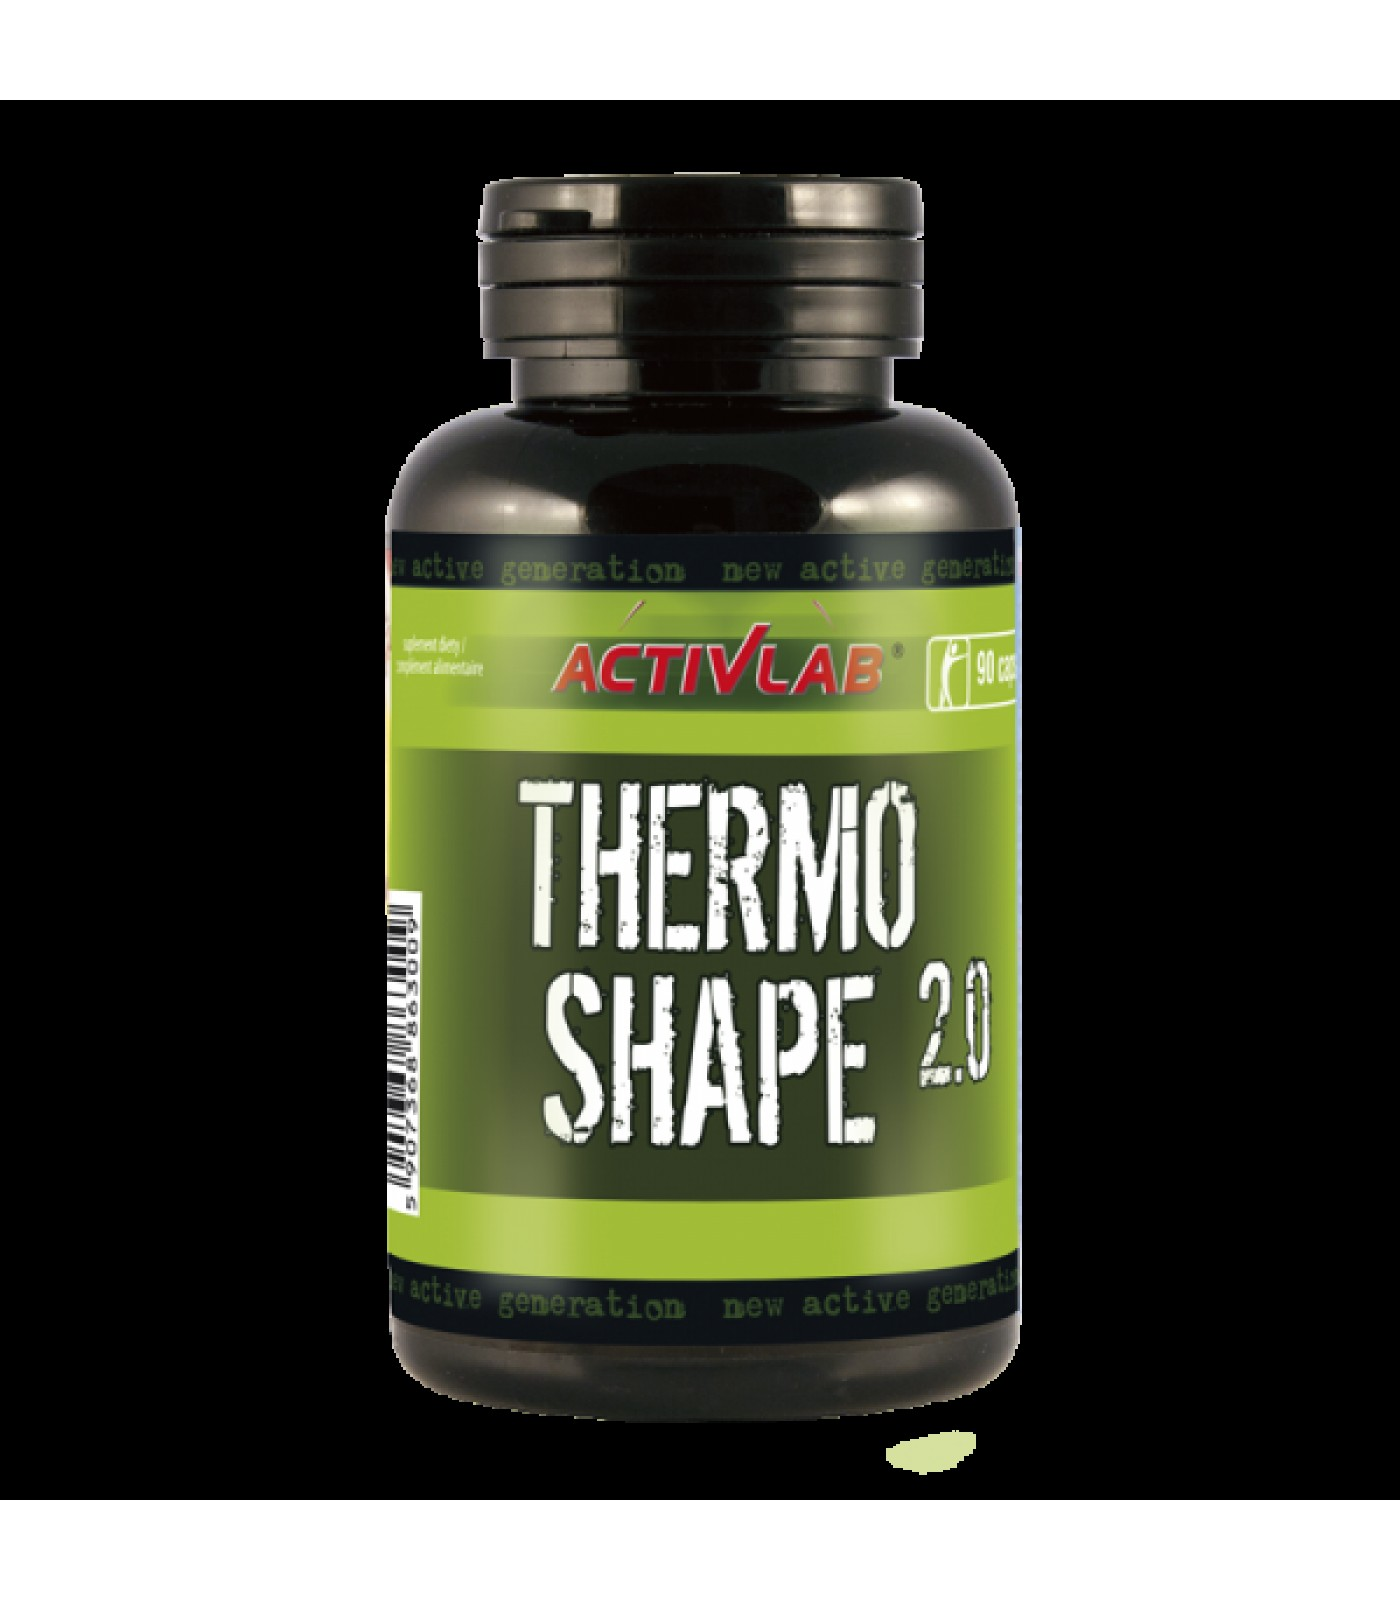 ActivLab - Thermo Shape 2.0 / 90caps.